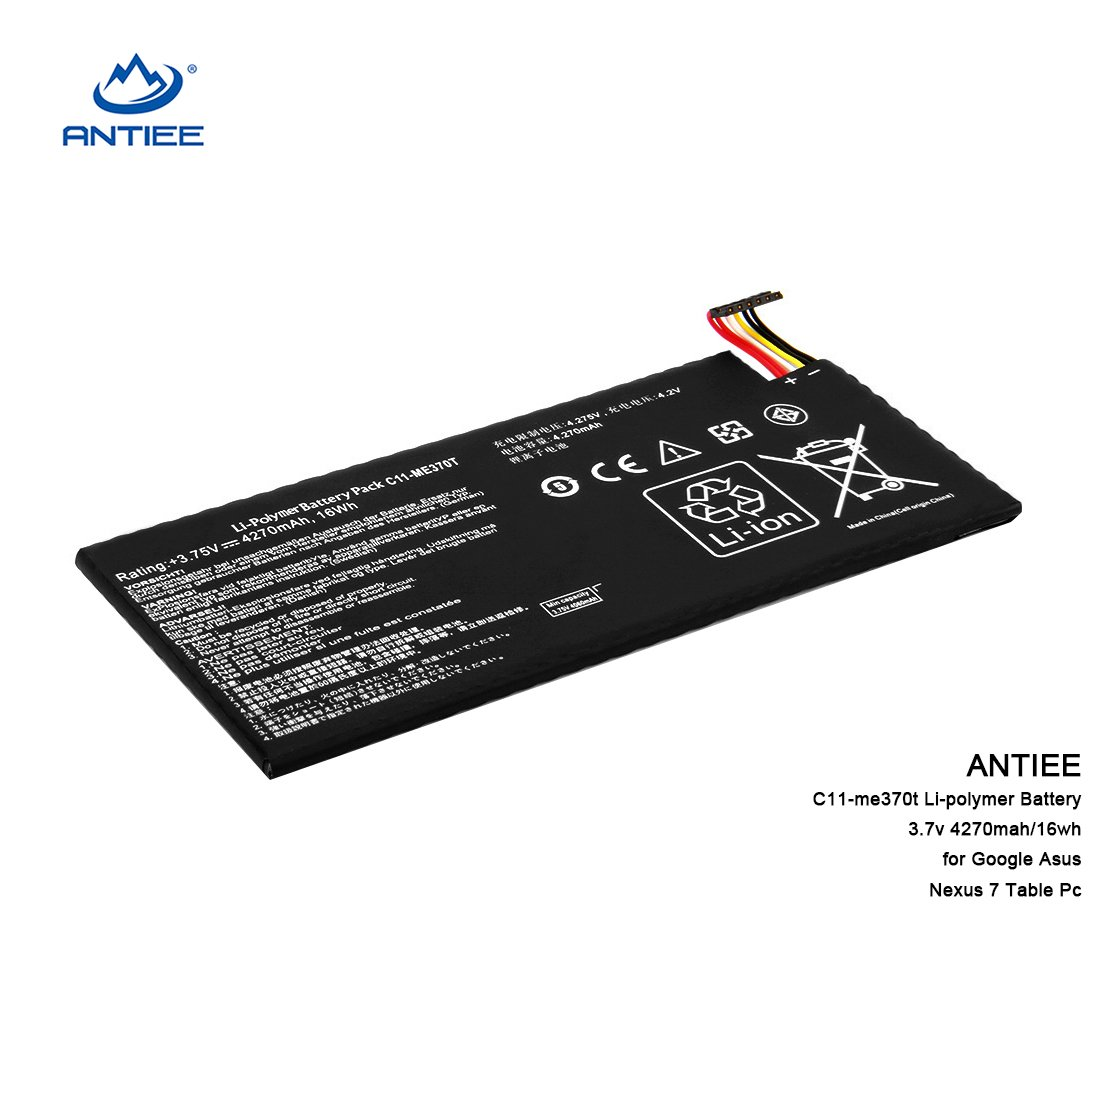 Antiee New Replacement C11 Me370t Li Polymer Battery For Pc Wiring Diagram Google Asus Nexus 7 Table 37v 4270mah 16wh By Generic Computers Accessories